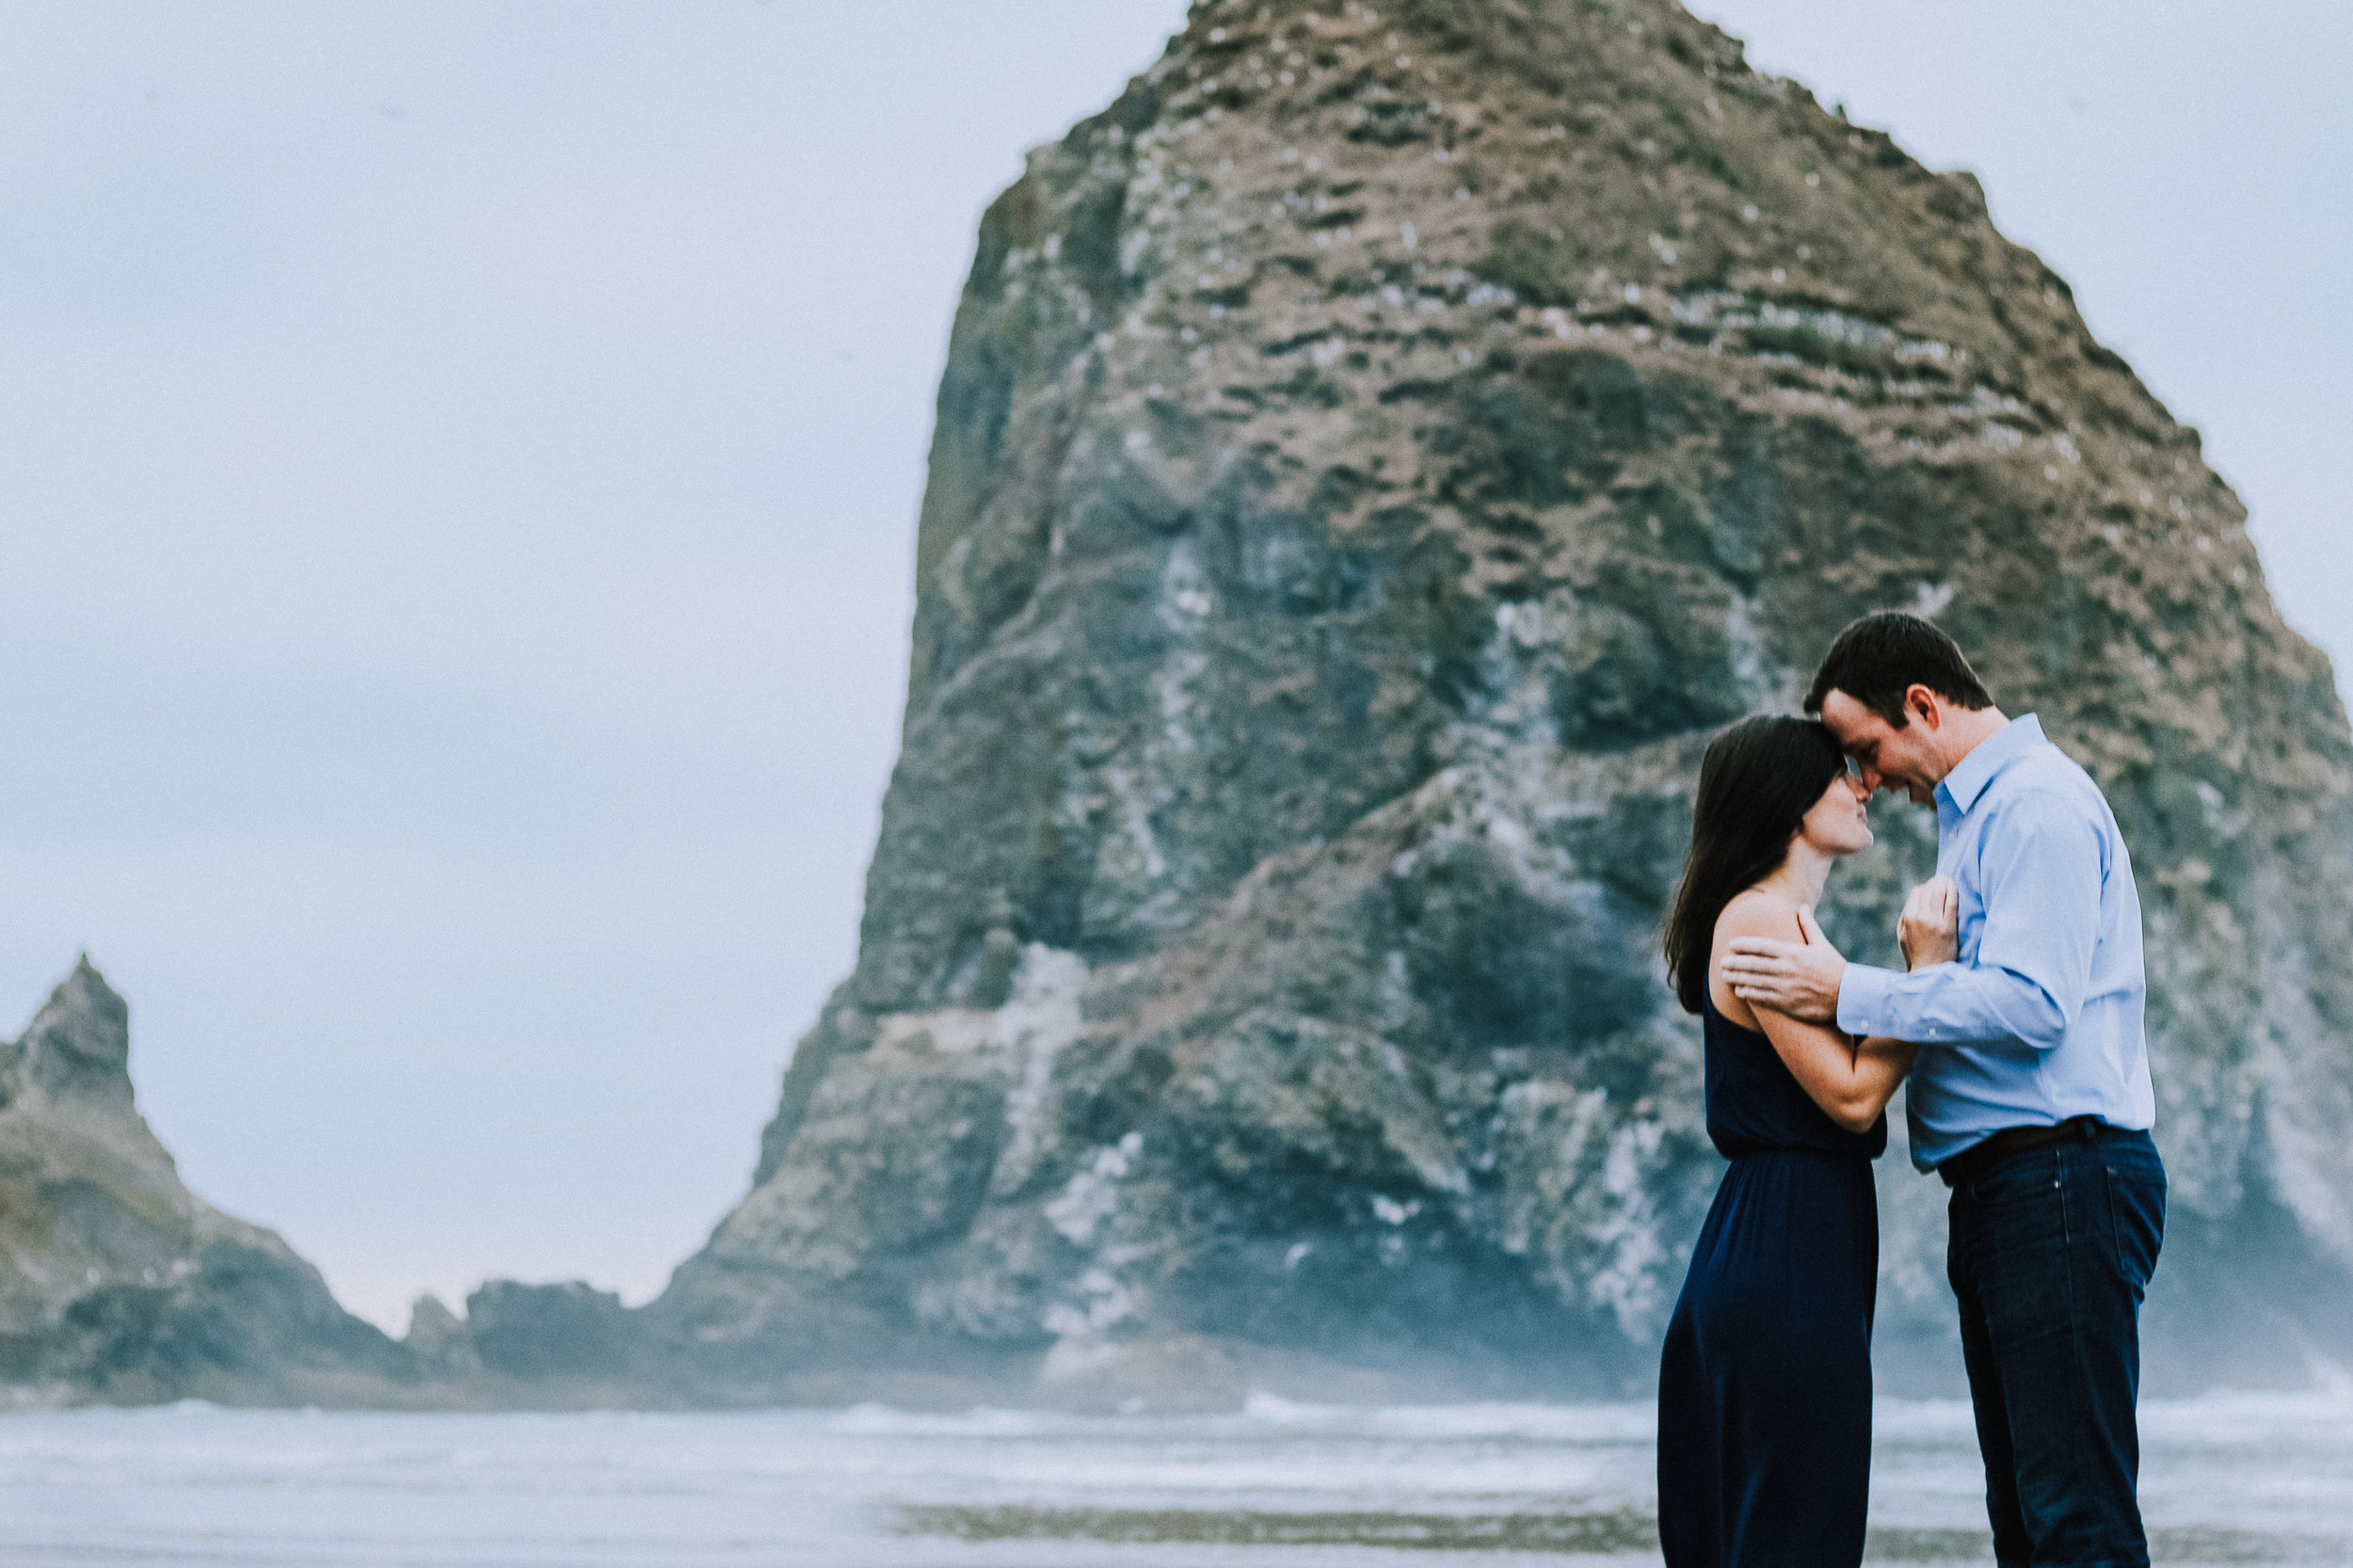 Caitlin + Scott - A Cannon Beach Couples Session